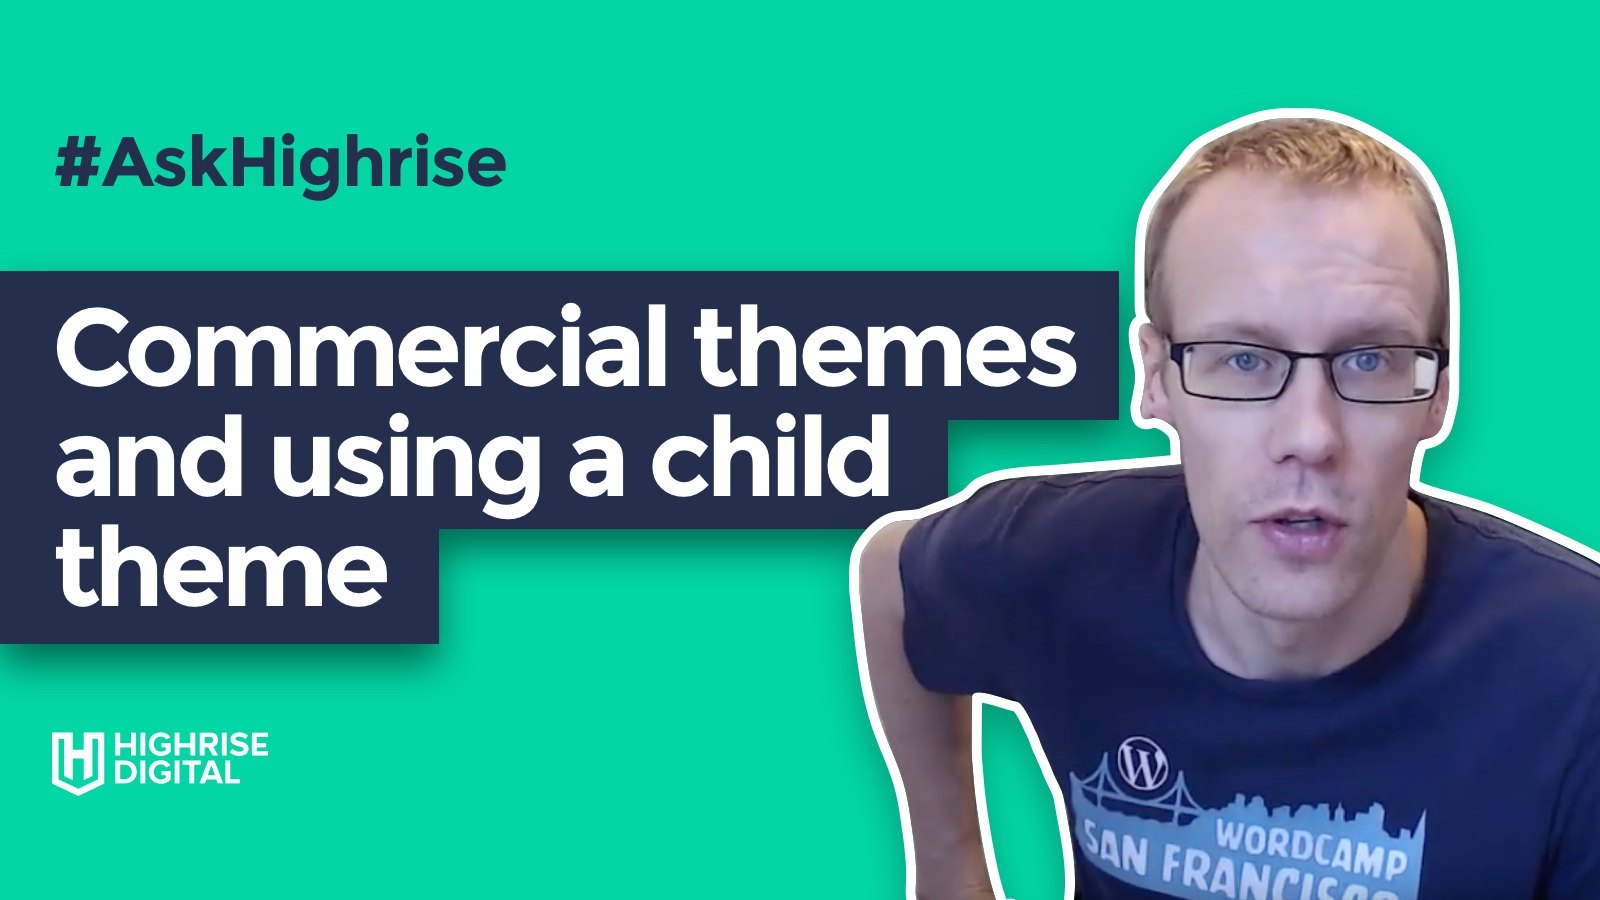 Commercial themes and using a child theme banner image